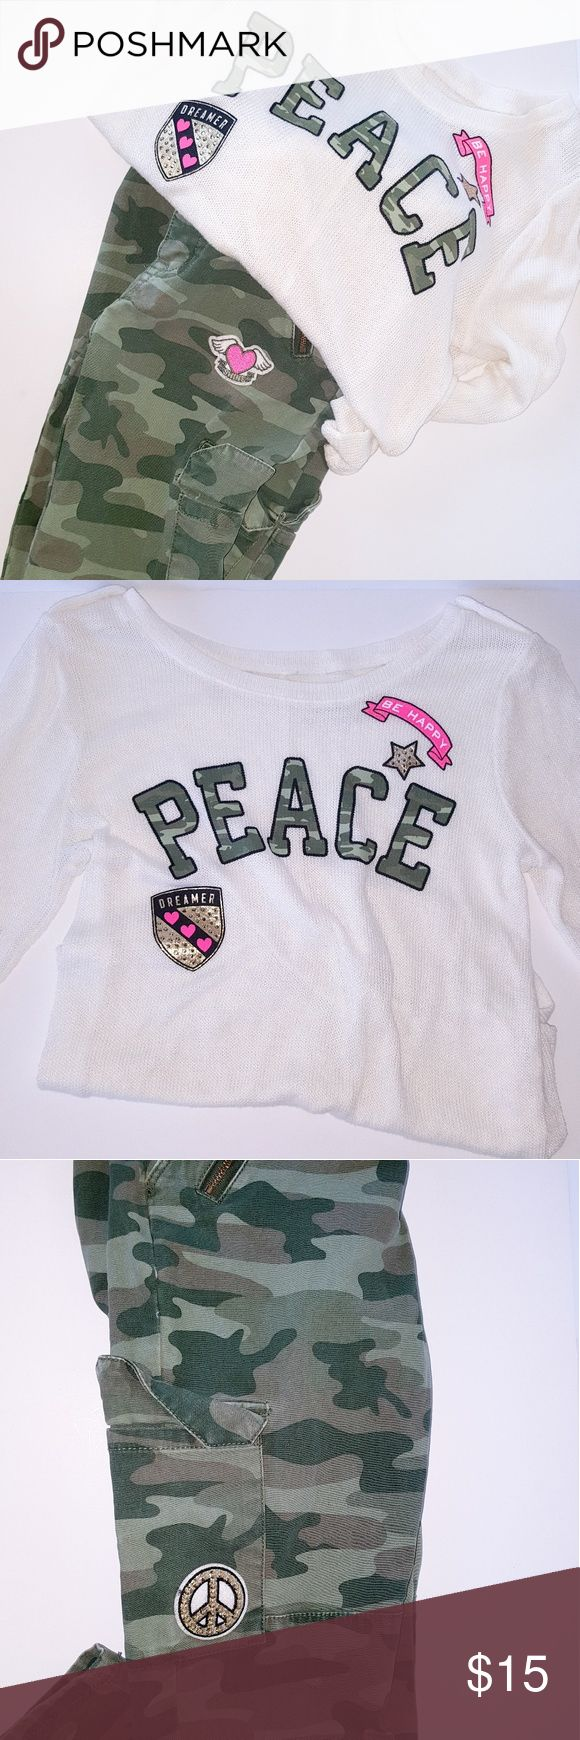 Pre owned girls (Peace) outfit from Justice In excellent condition Peace Army outfit from justice. Light weight sweater with army pants. Size 12 girls.. Justice Matching Sets